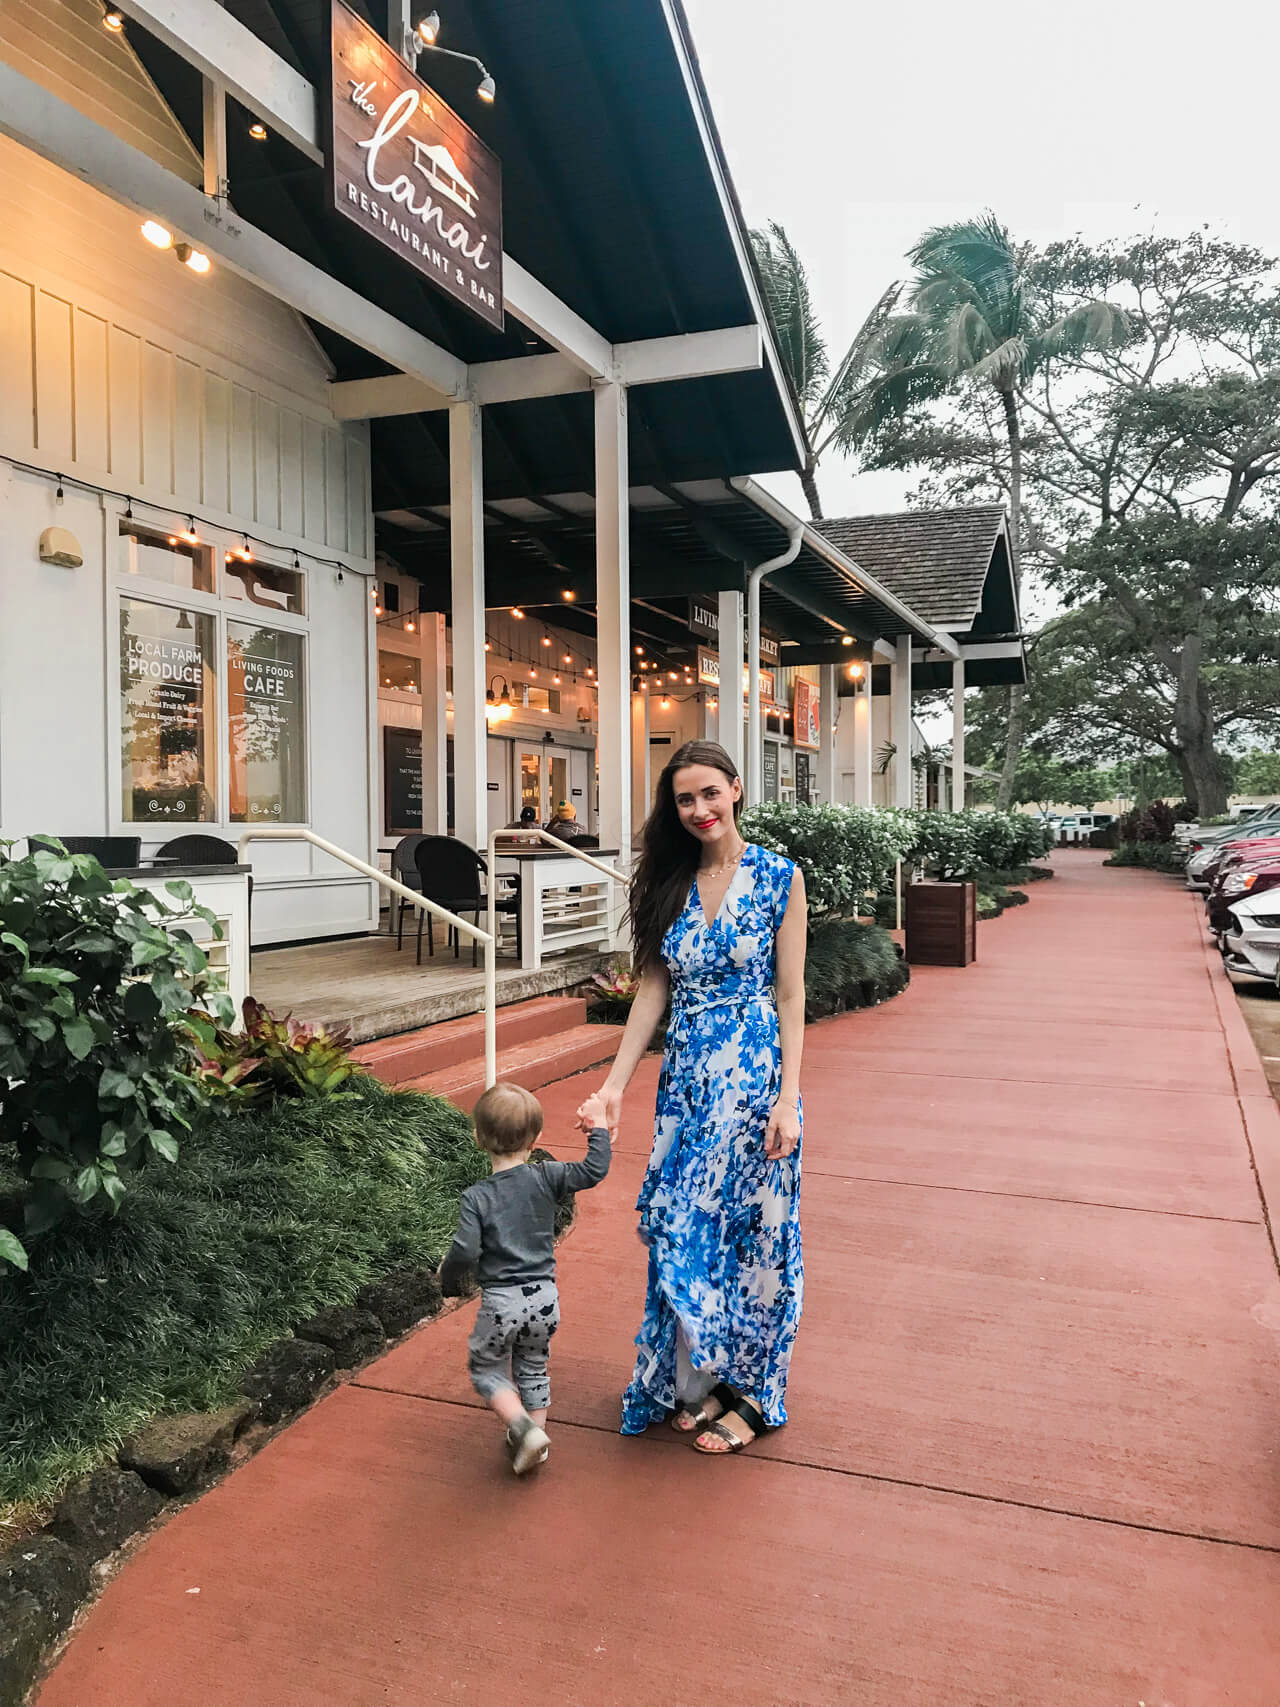 food recommendations for kauai that are baby friendly